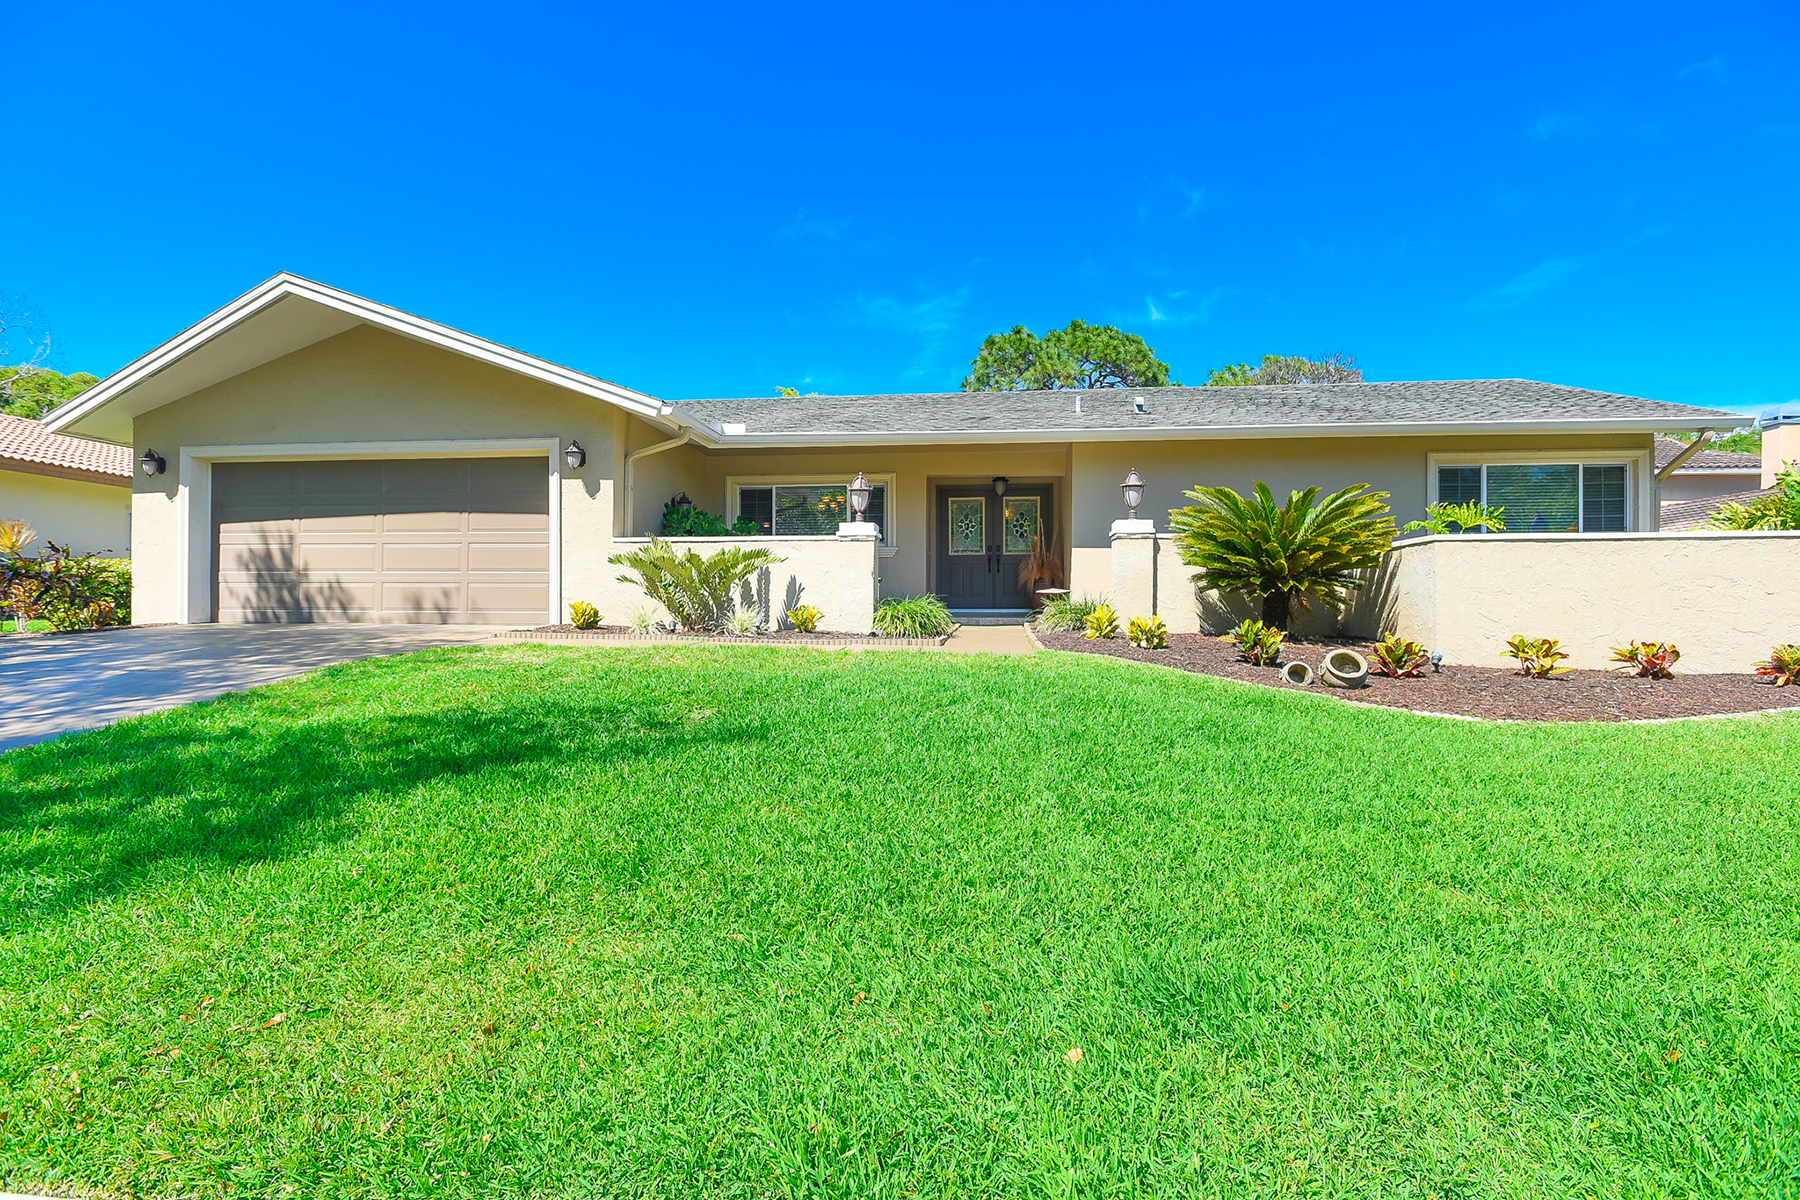 Single Family Home for Sale at CLEARWATER 2886 Wildwood Dr, Clearwater, Florida, 33761 United States